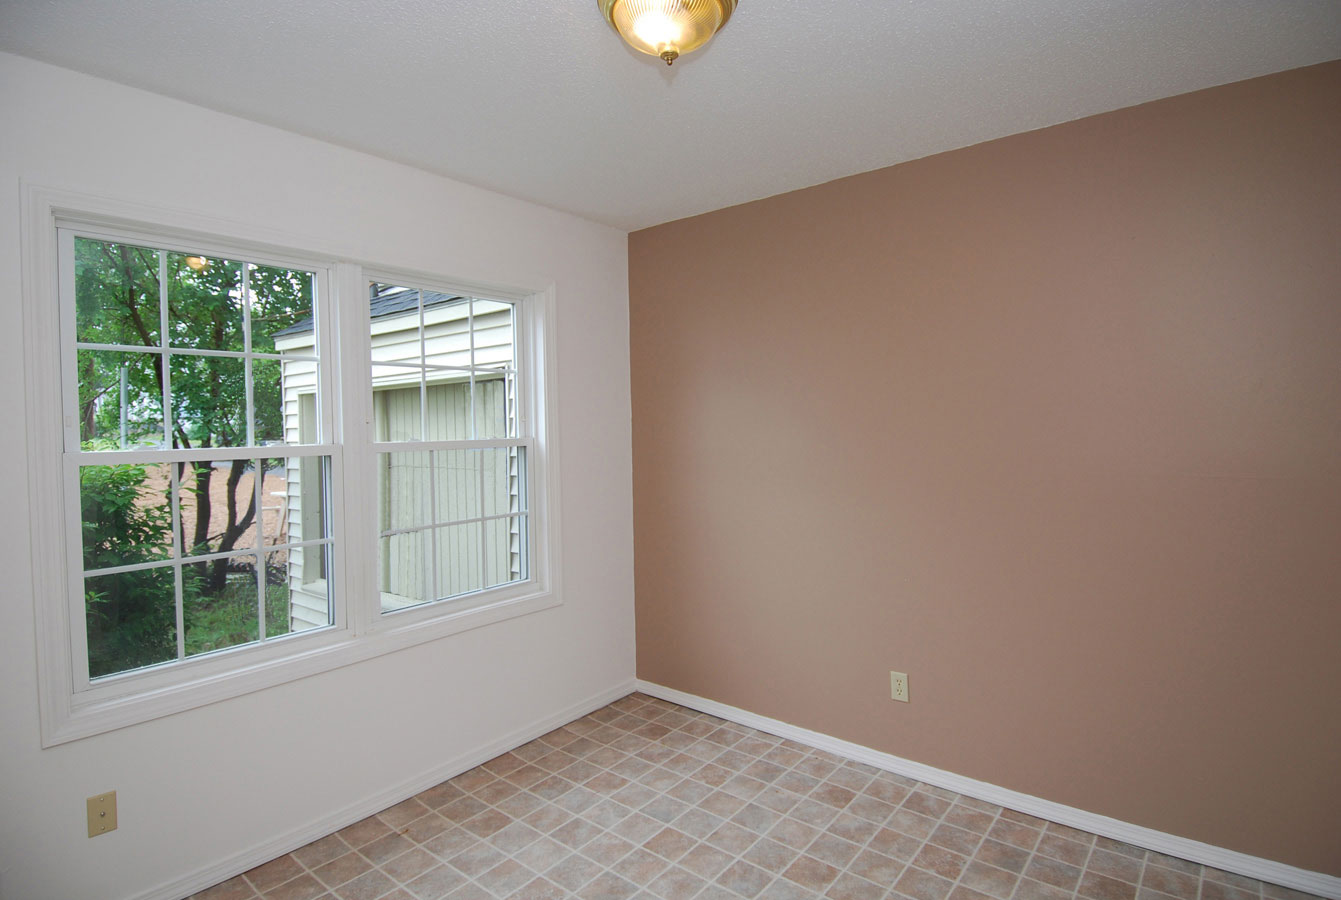 1 Bedroom Apartments In Manchester Nh 28 Images Apartments In Manchester Nh For Rent